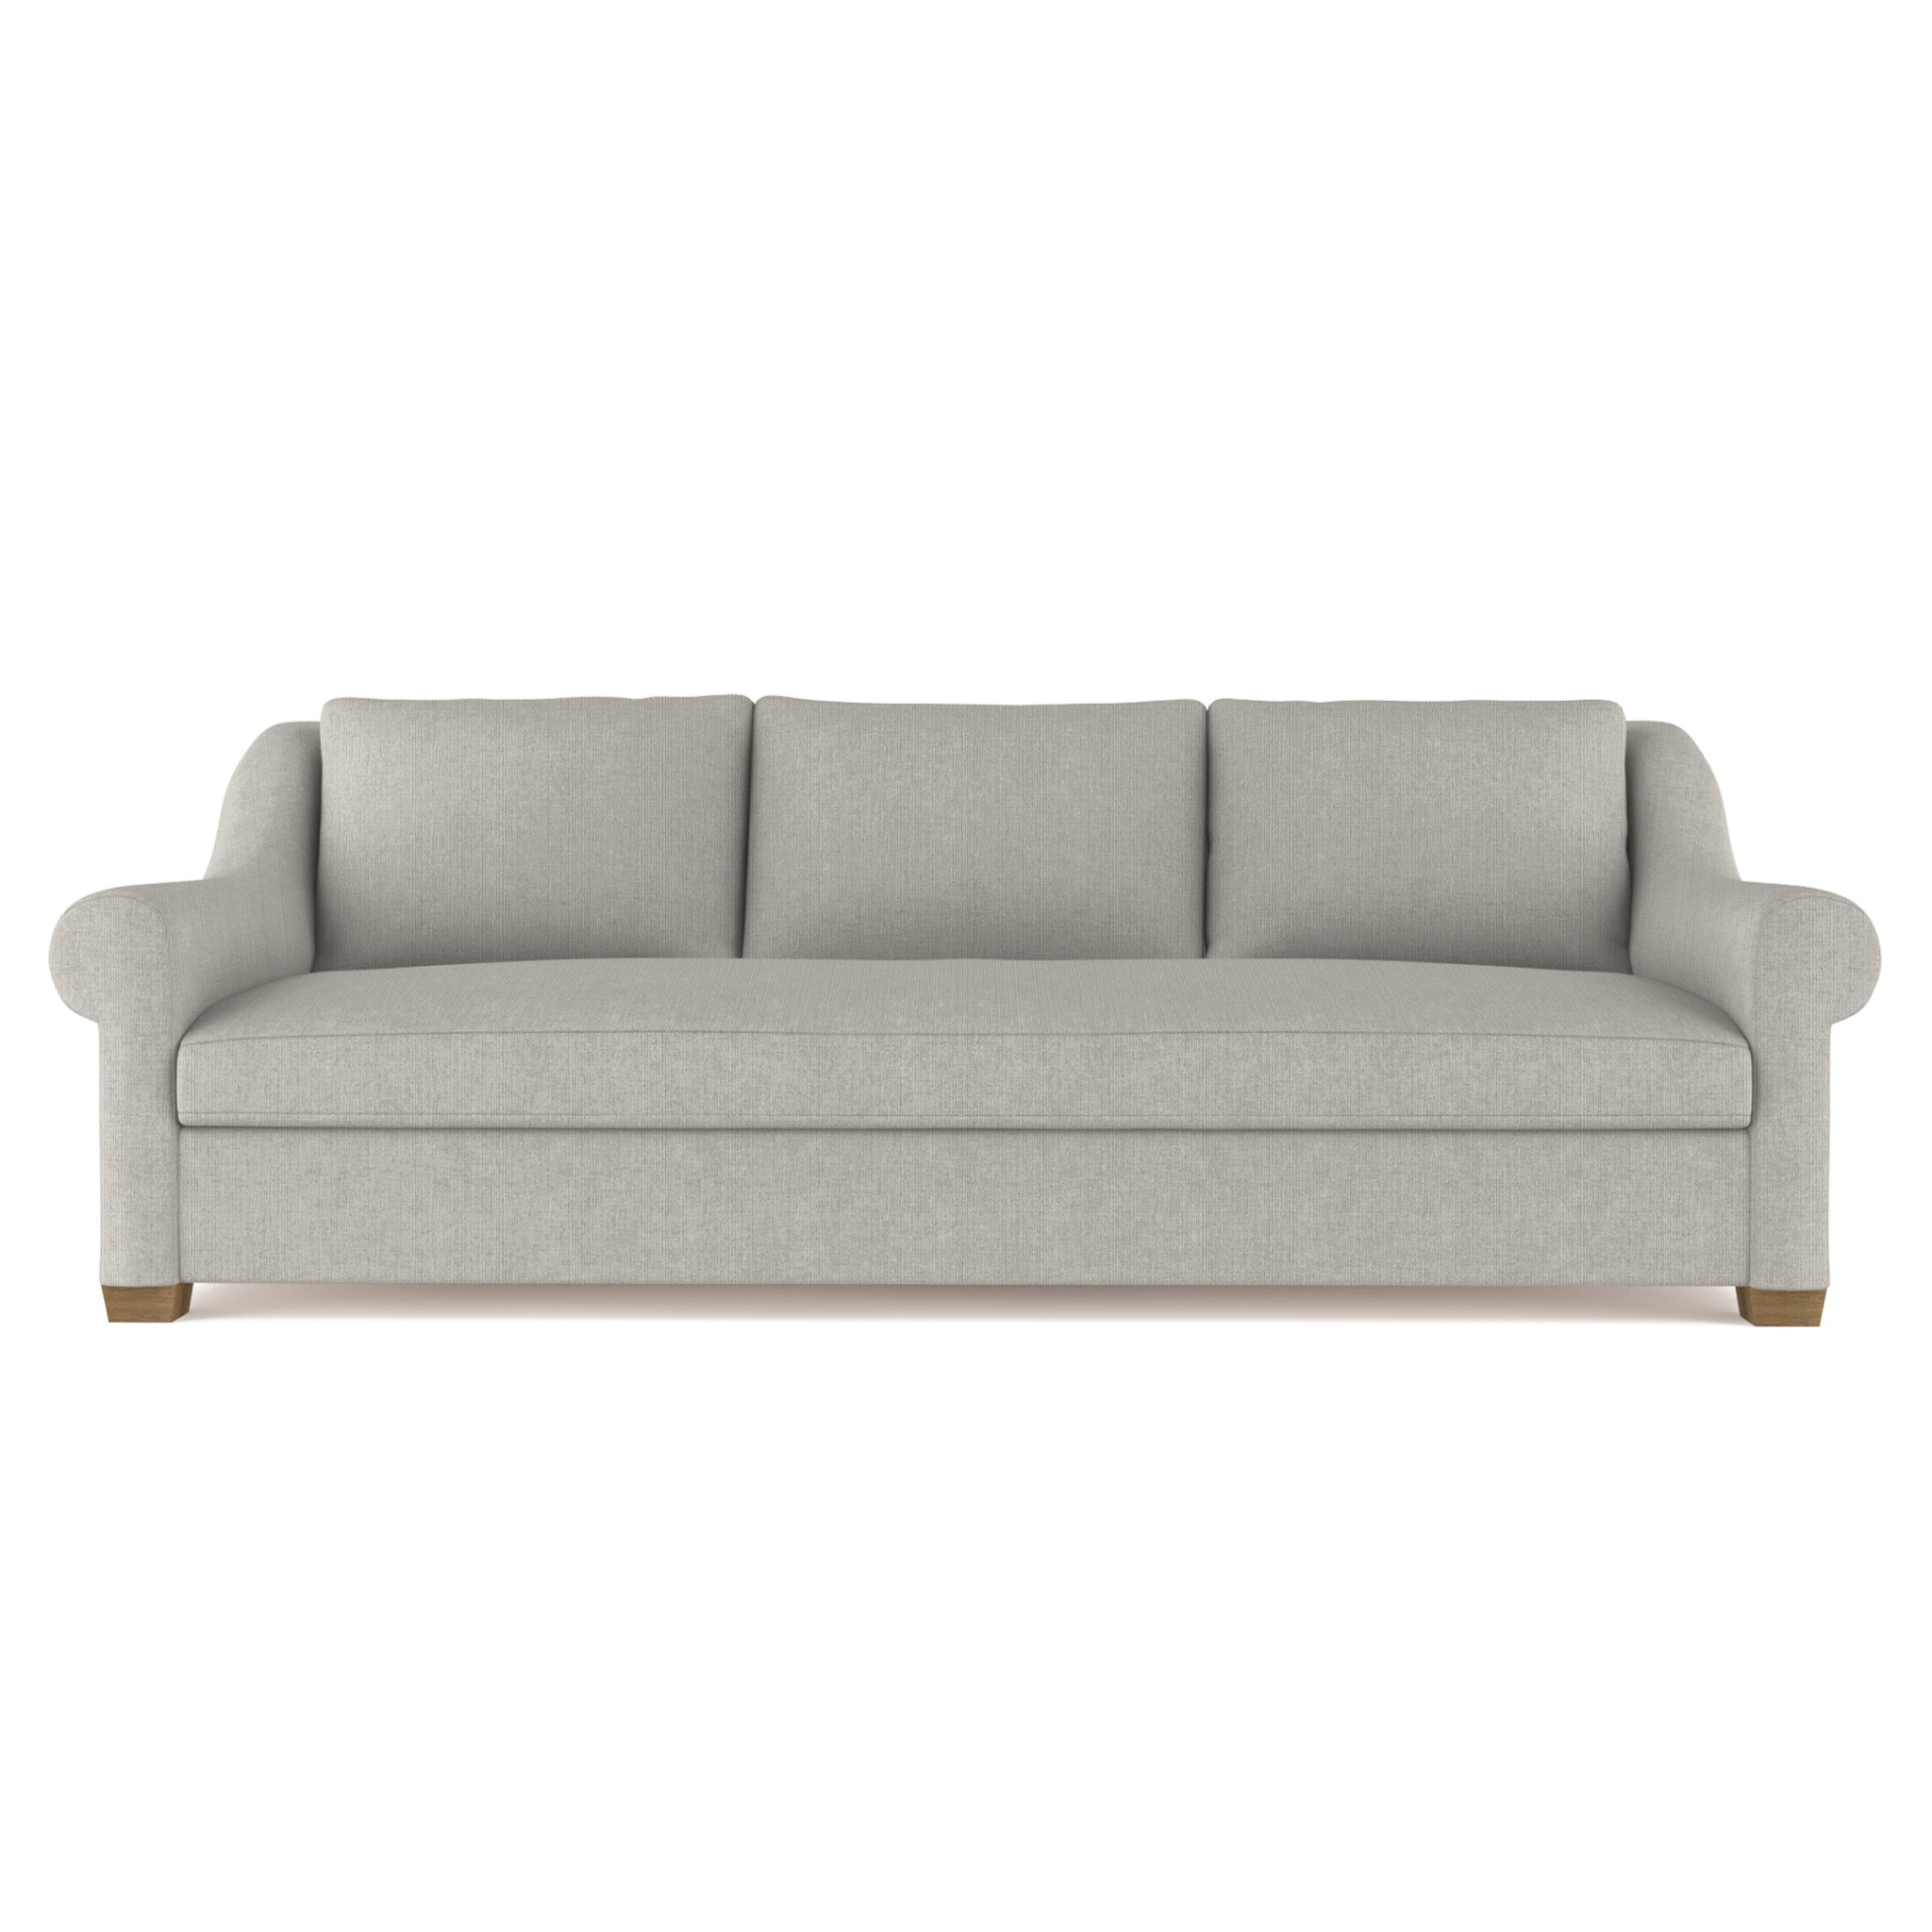 Thompson Sofa - Silver Streak Box Weave Linen